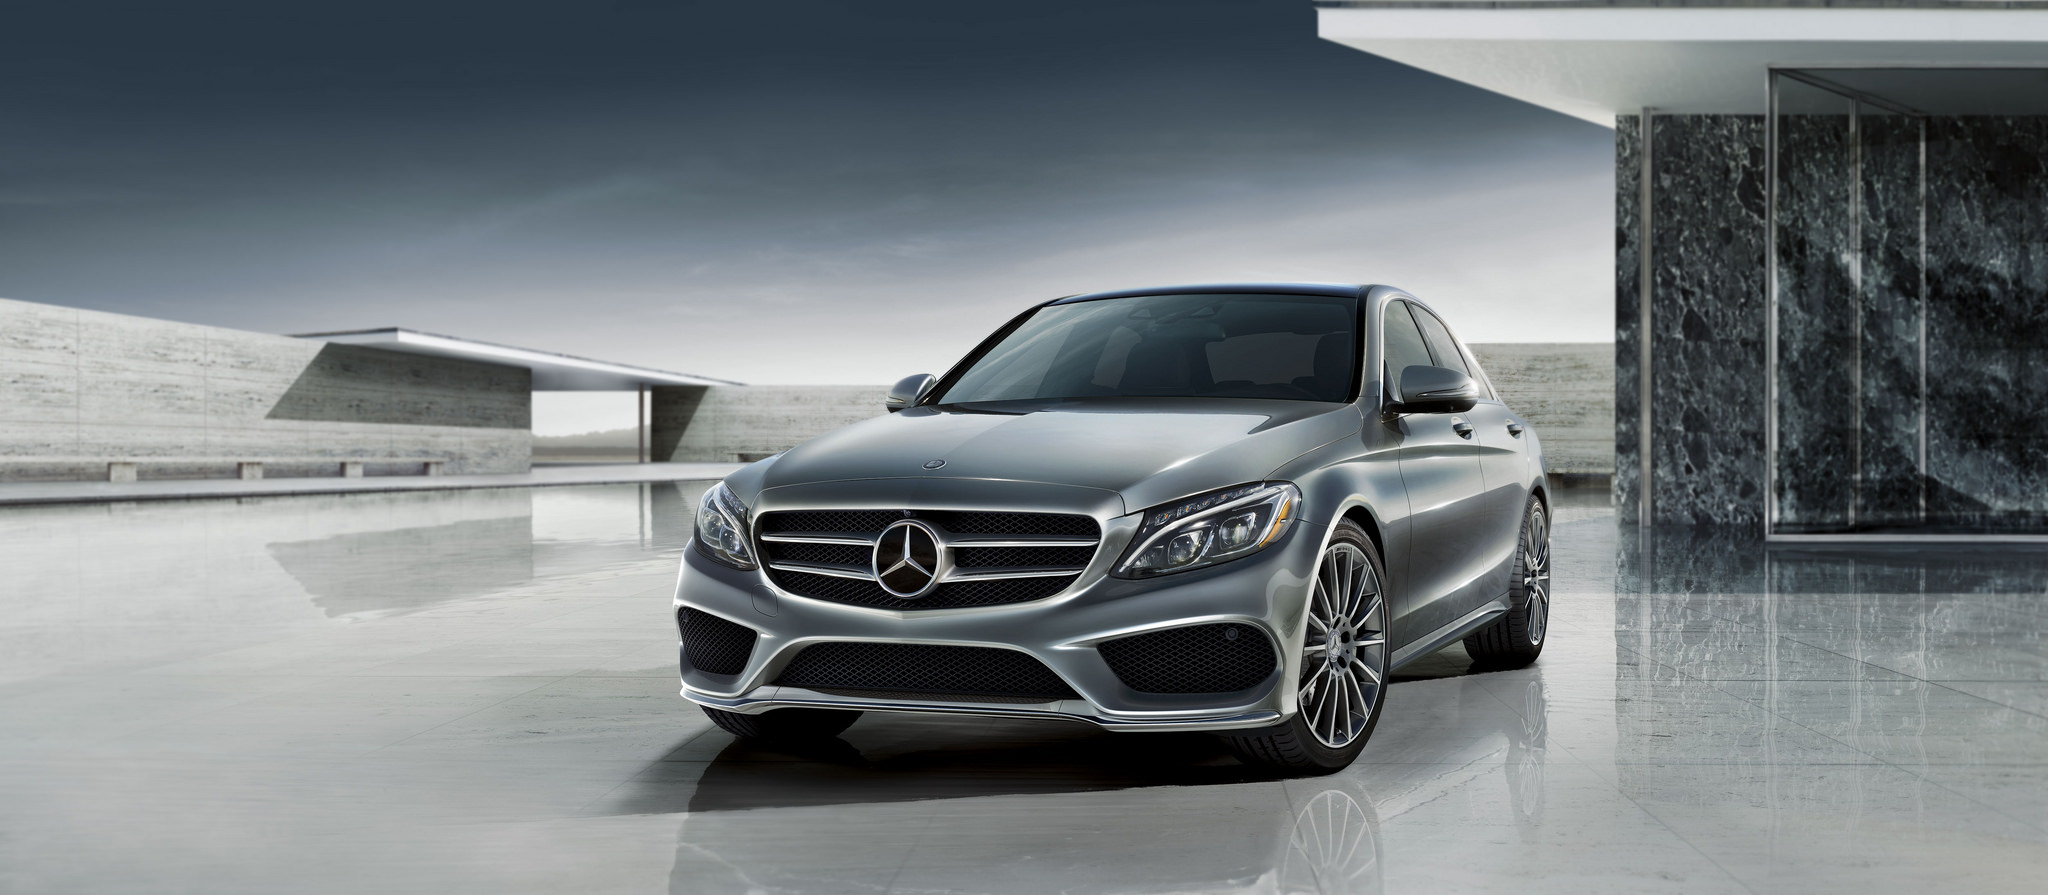 Best ever november sales earned by mercedes benz the for Mercedes benz salesman